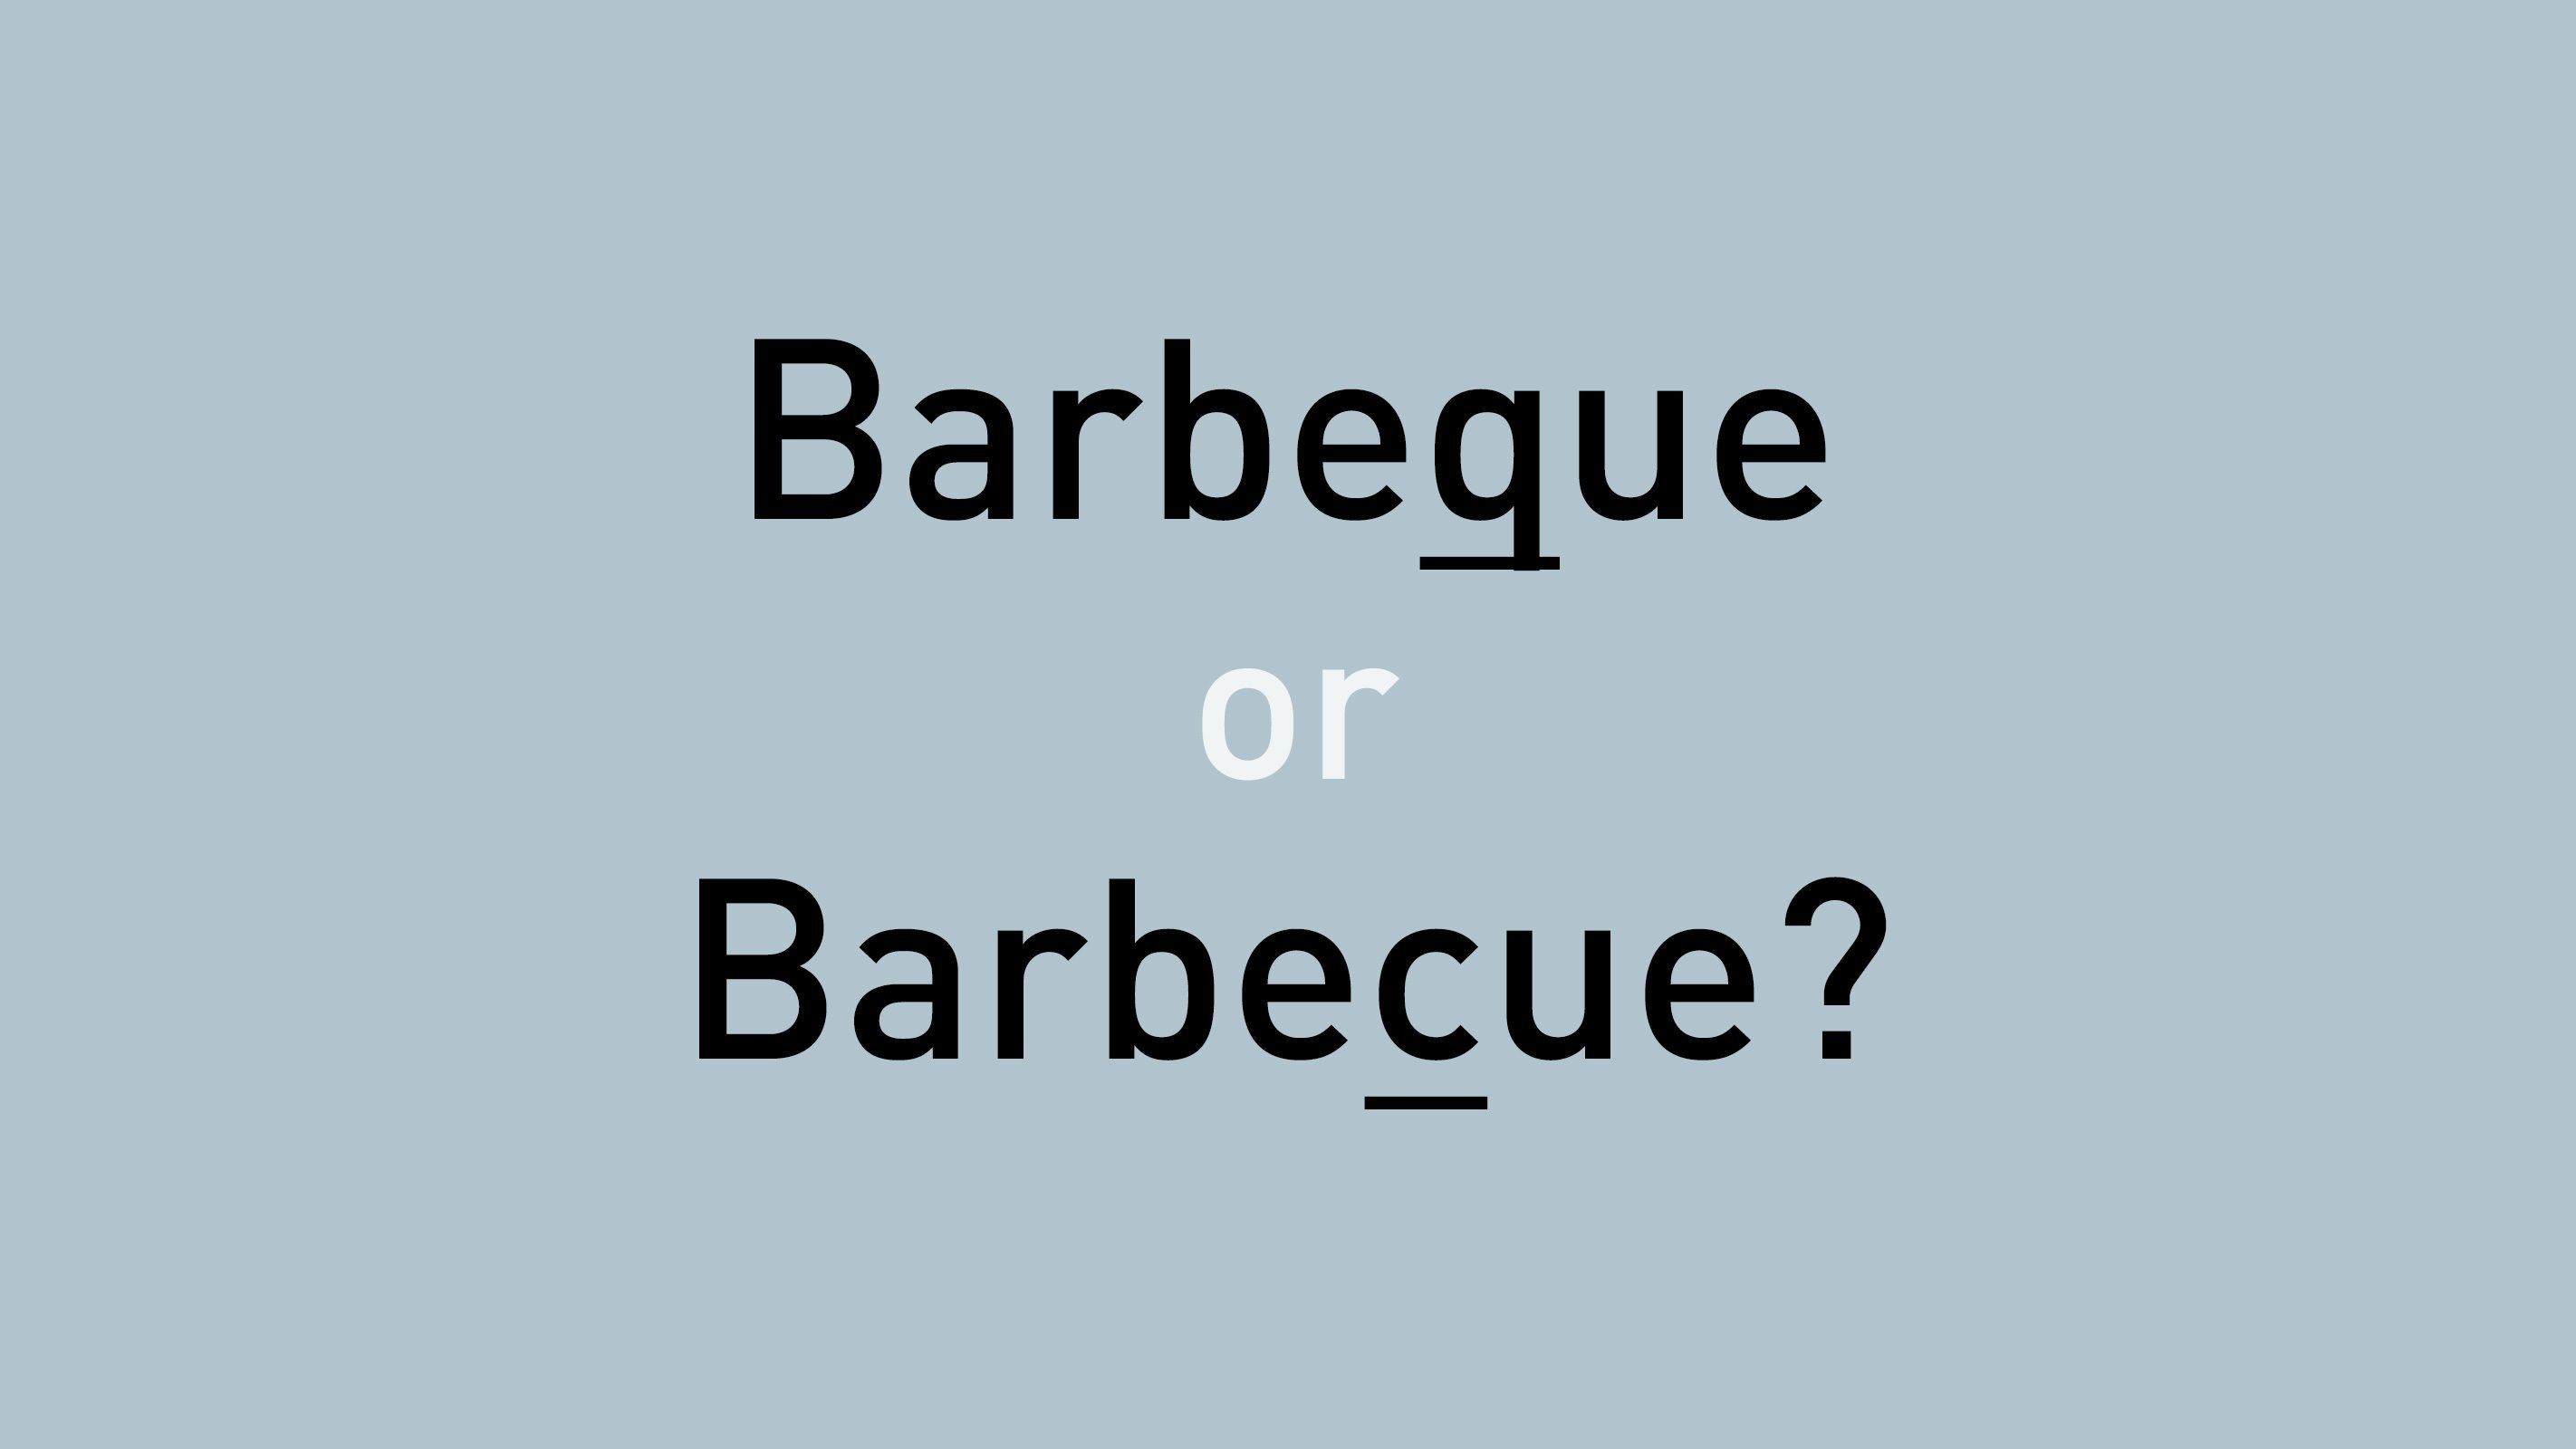 barbeque or barbecue?